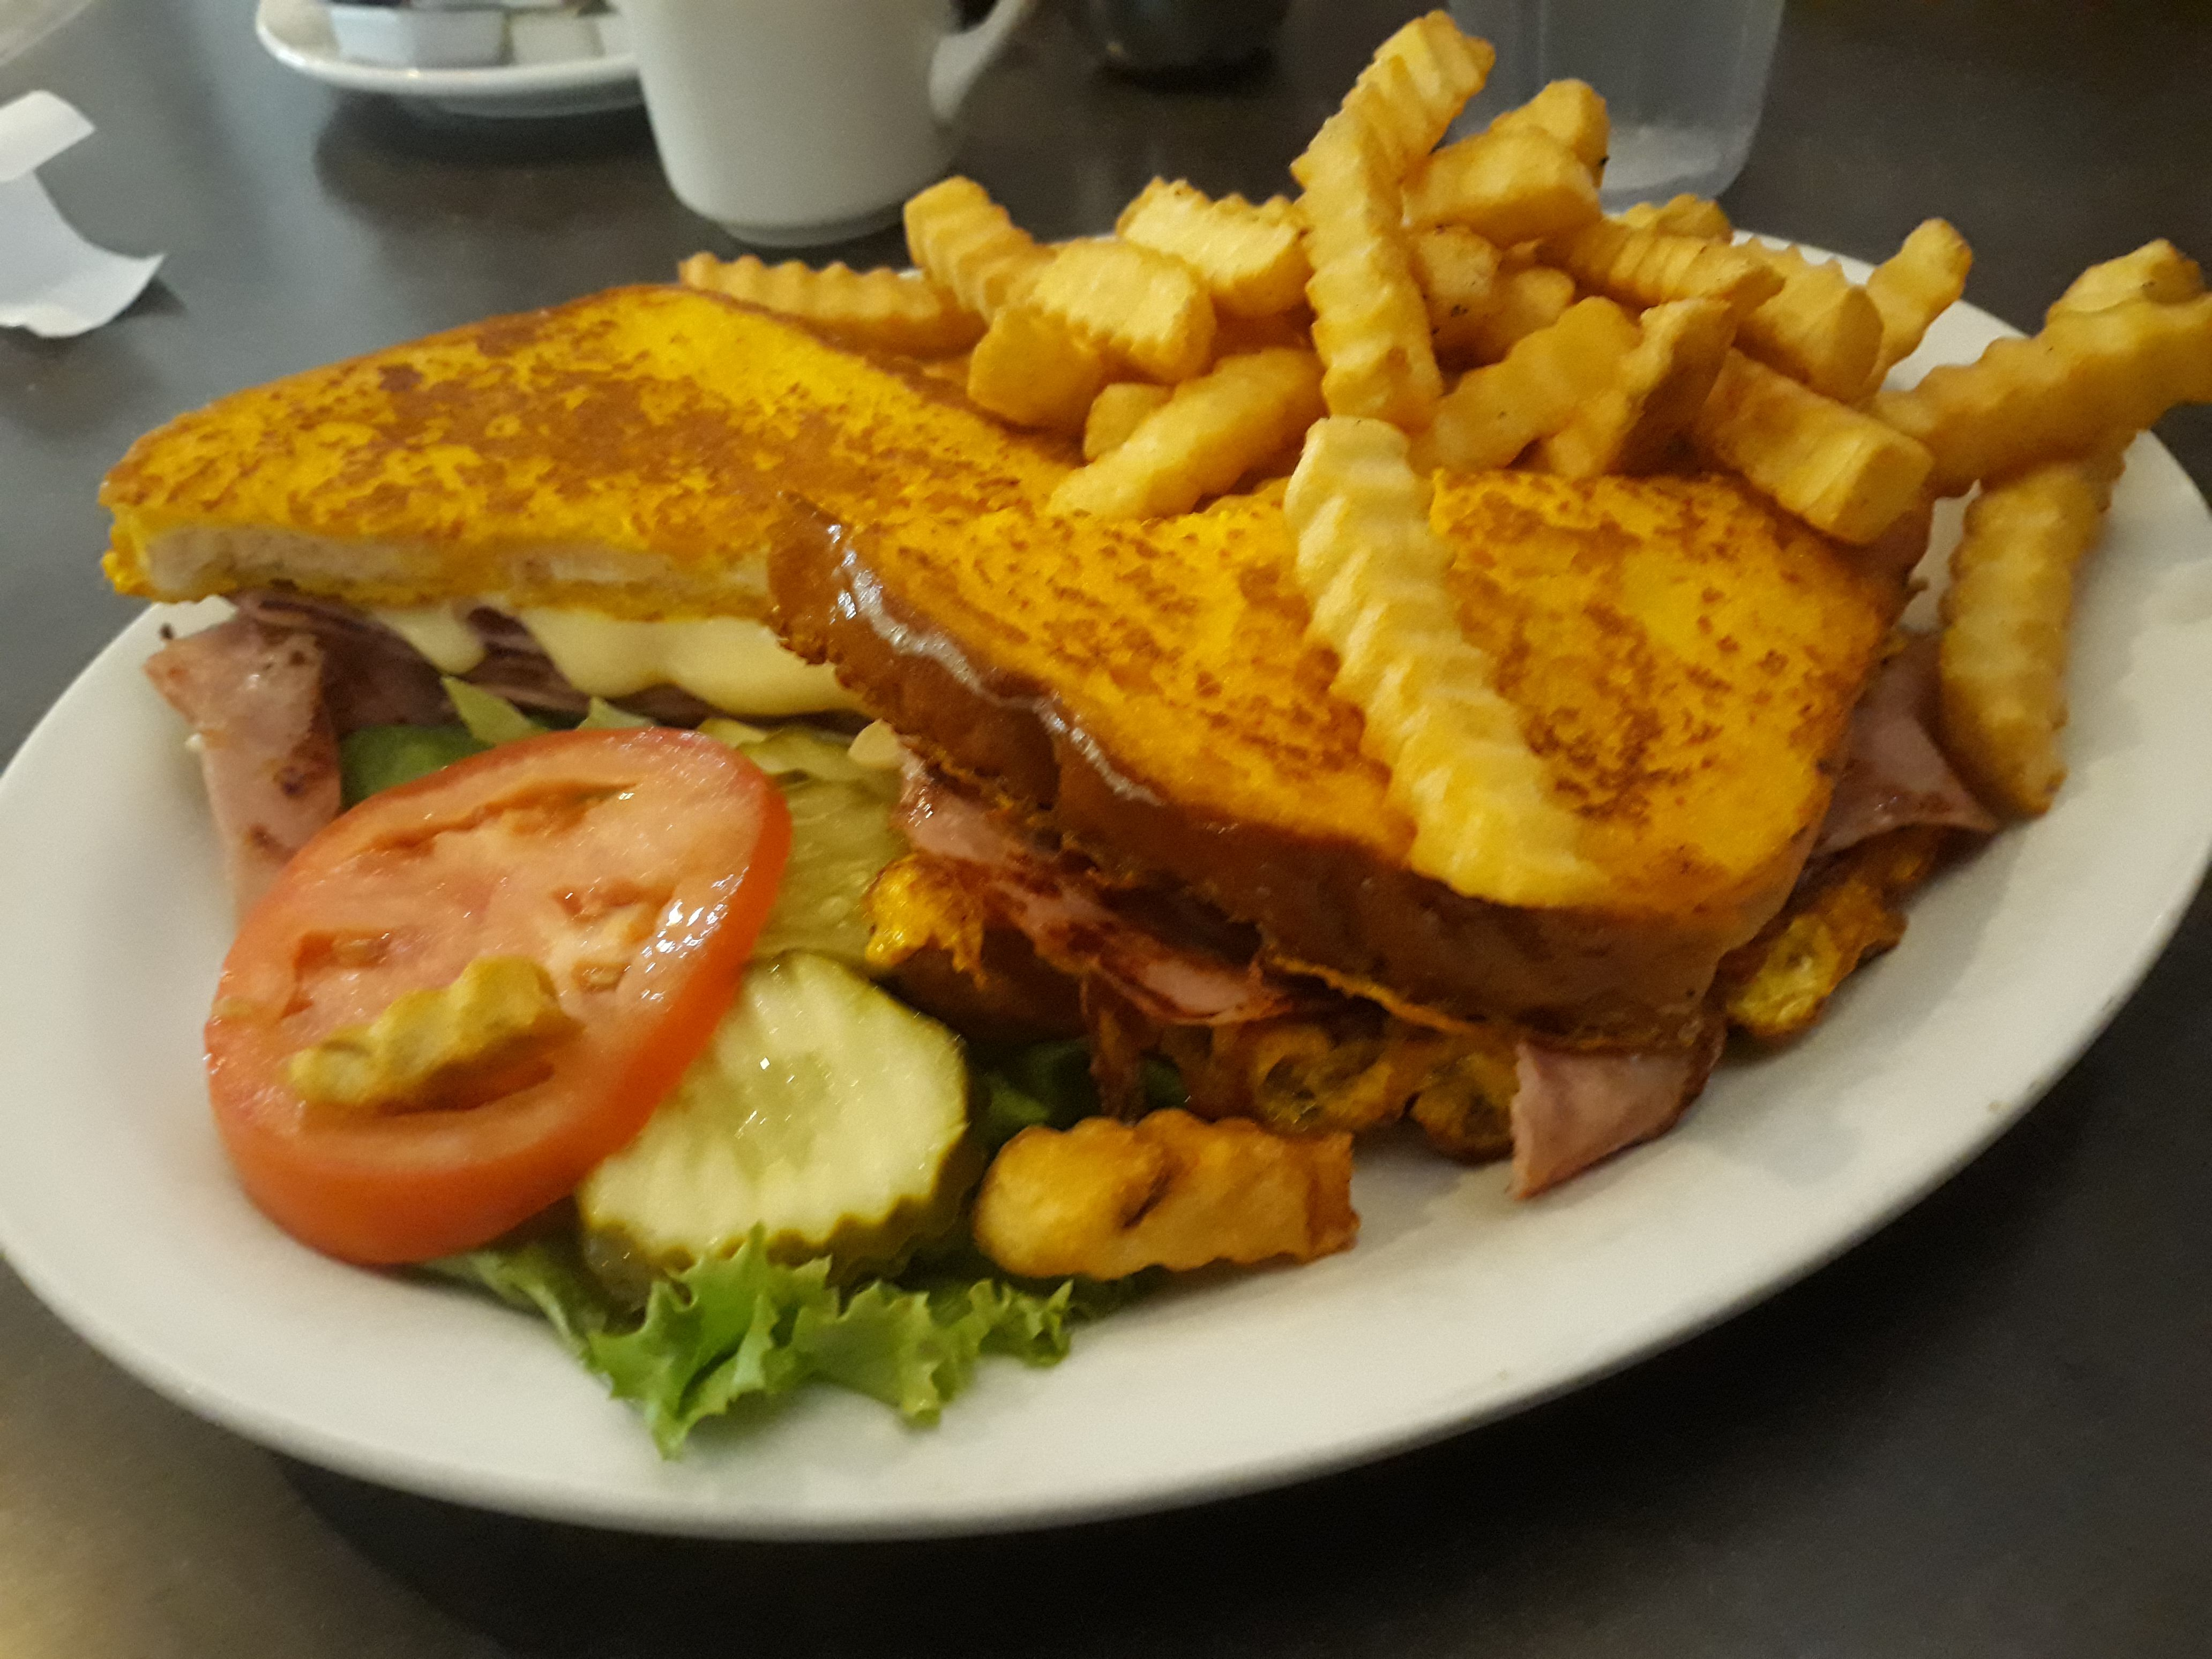 The Monte Carlo at the HiWay Restaurant in Ottawa features grilled ham and Swiss cheese between two pieces of French toast. Served hot, this sandwich melted in my mouth.